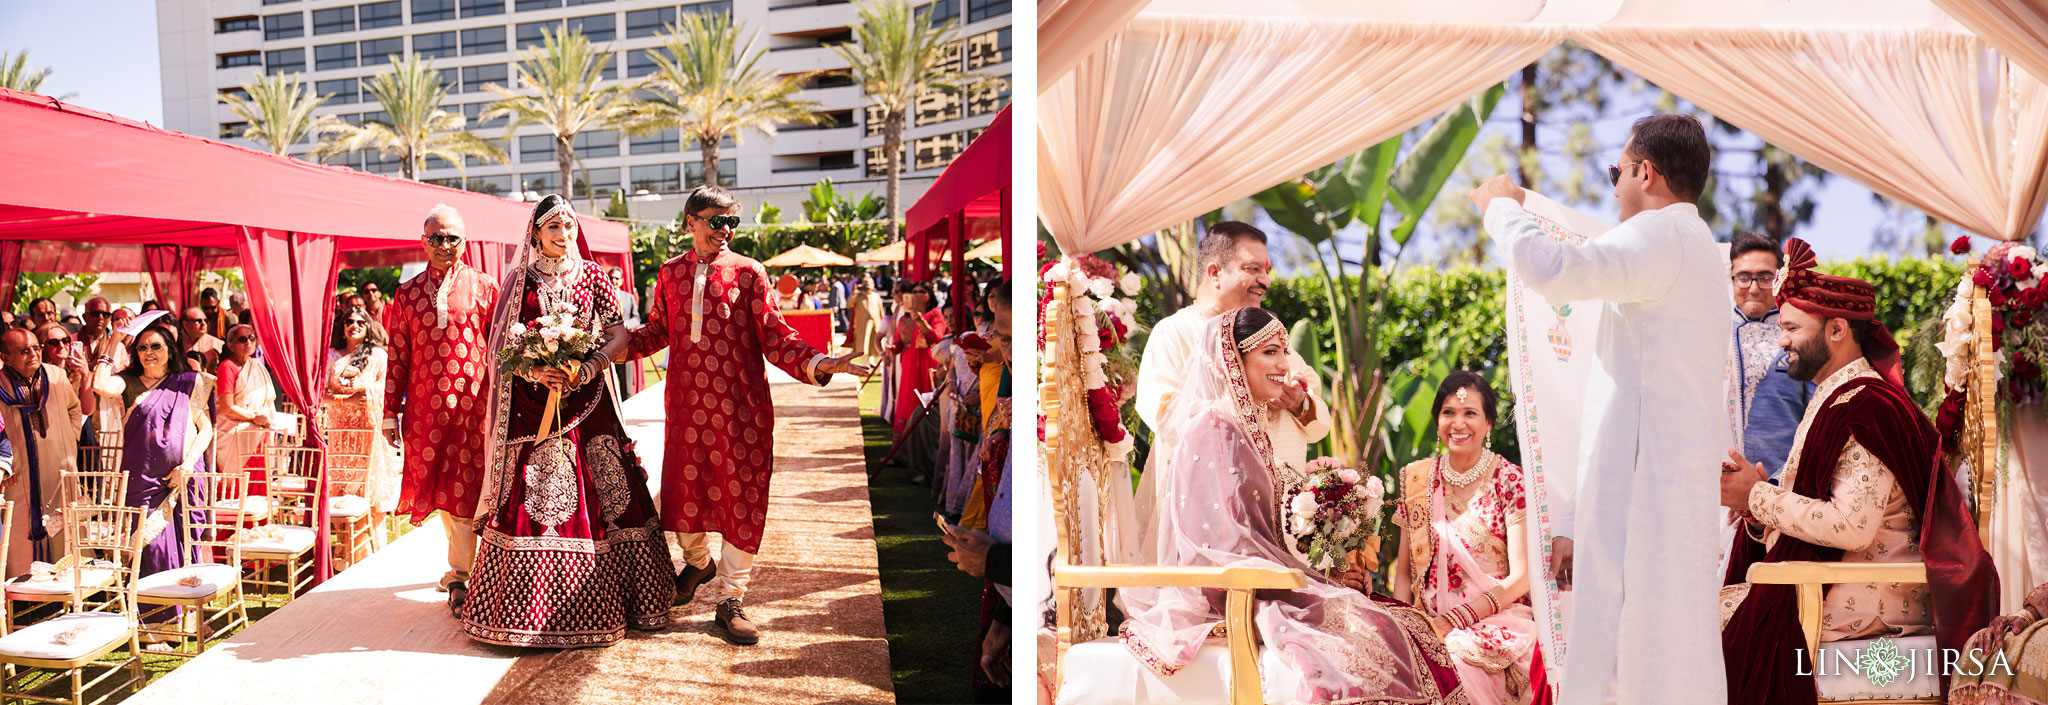 28 hotel irvine orange county indian wedding photography